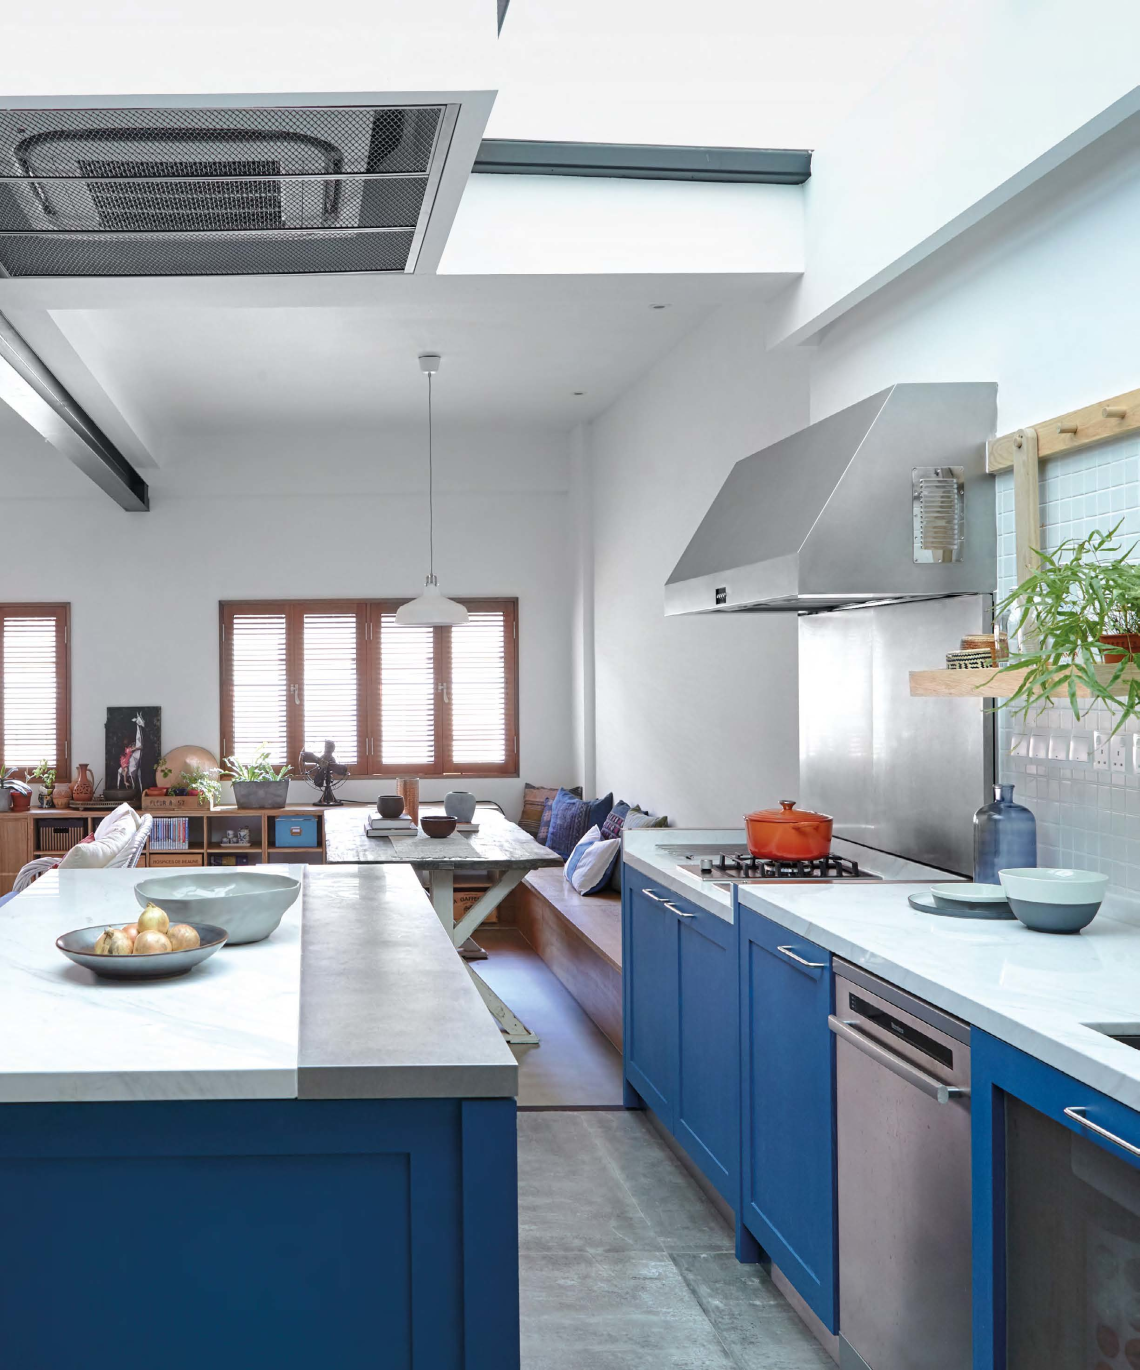 U201cWe Wanted Our Home To Exude A Natural And Rustic Look, With A Dash Of  Colour. We Love The Provencal Blue Often Seen Painted On Doors And Window  Shutters In ...